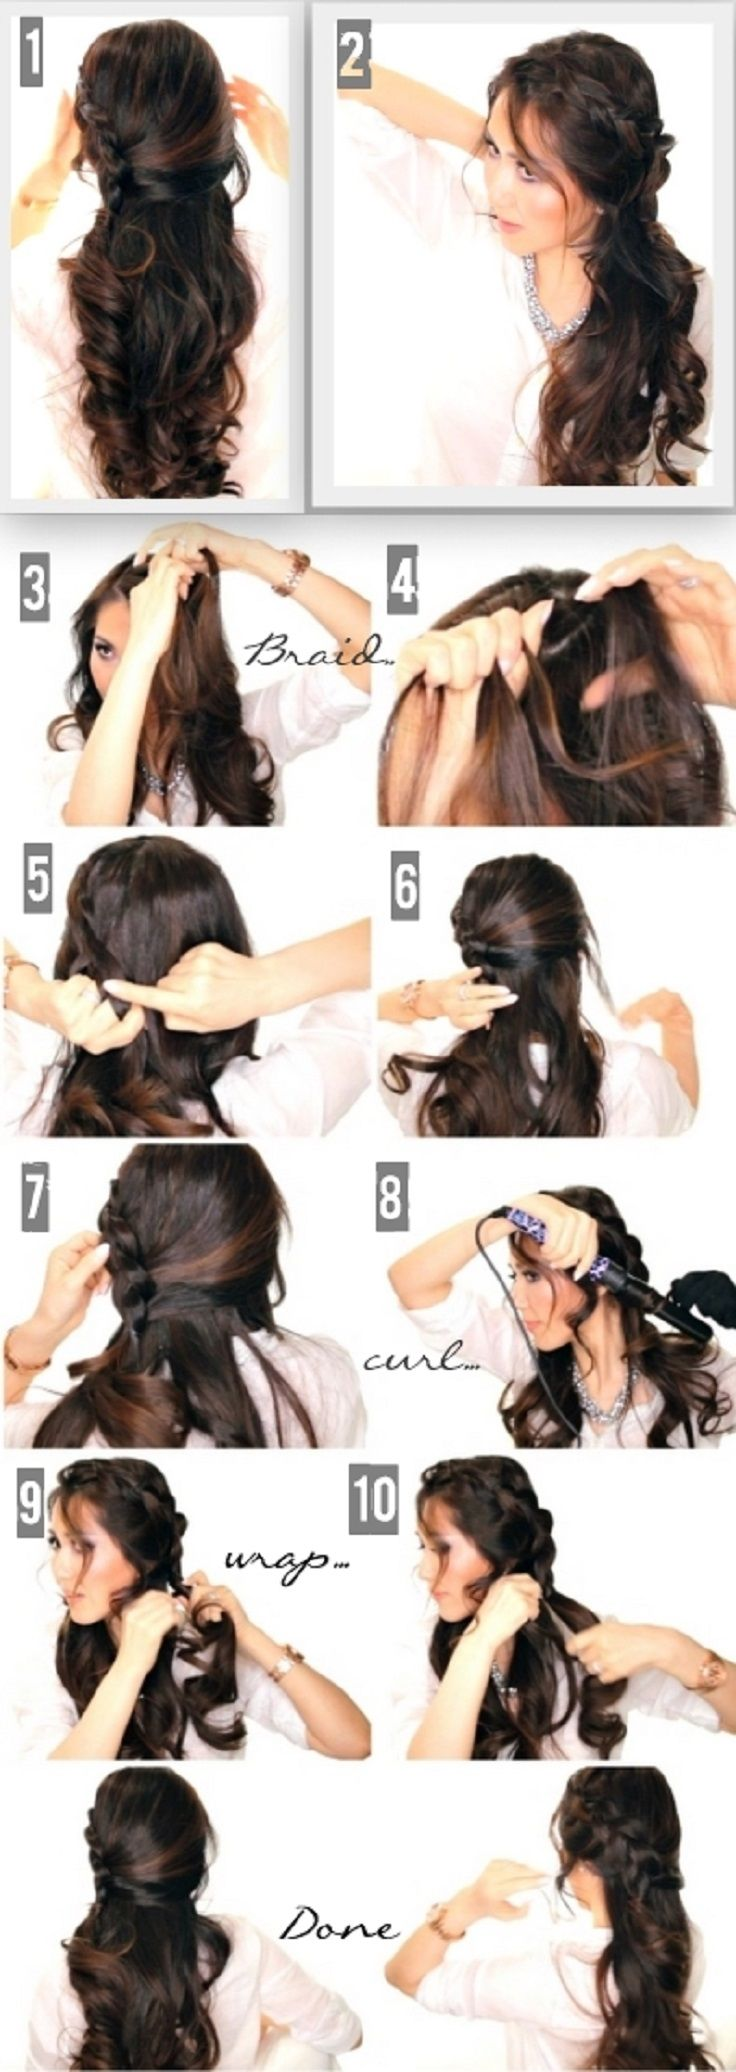 Top 10 Half Up Half Down Hair Tutorials You Must Have | Tutorials ...